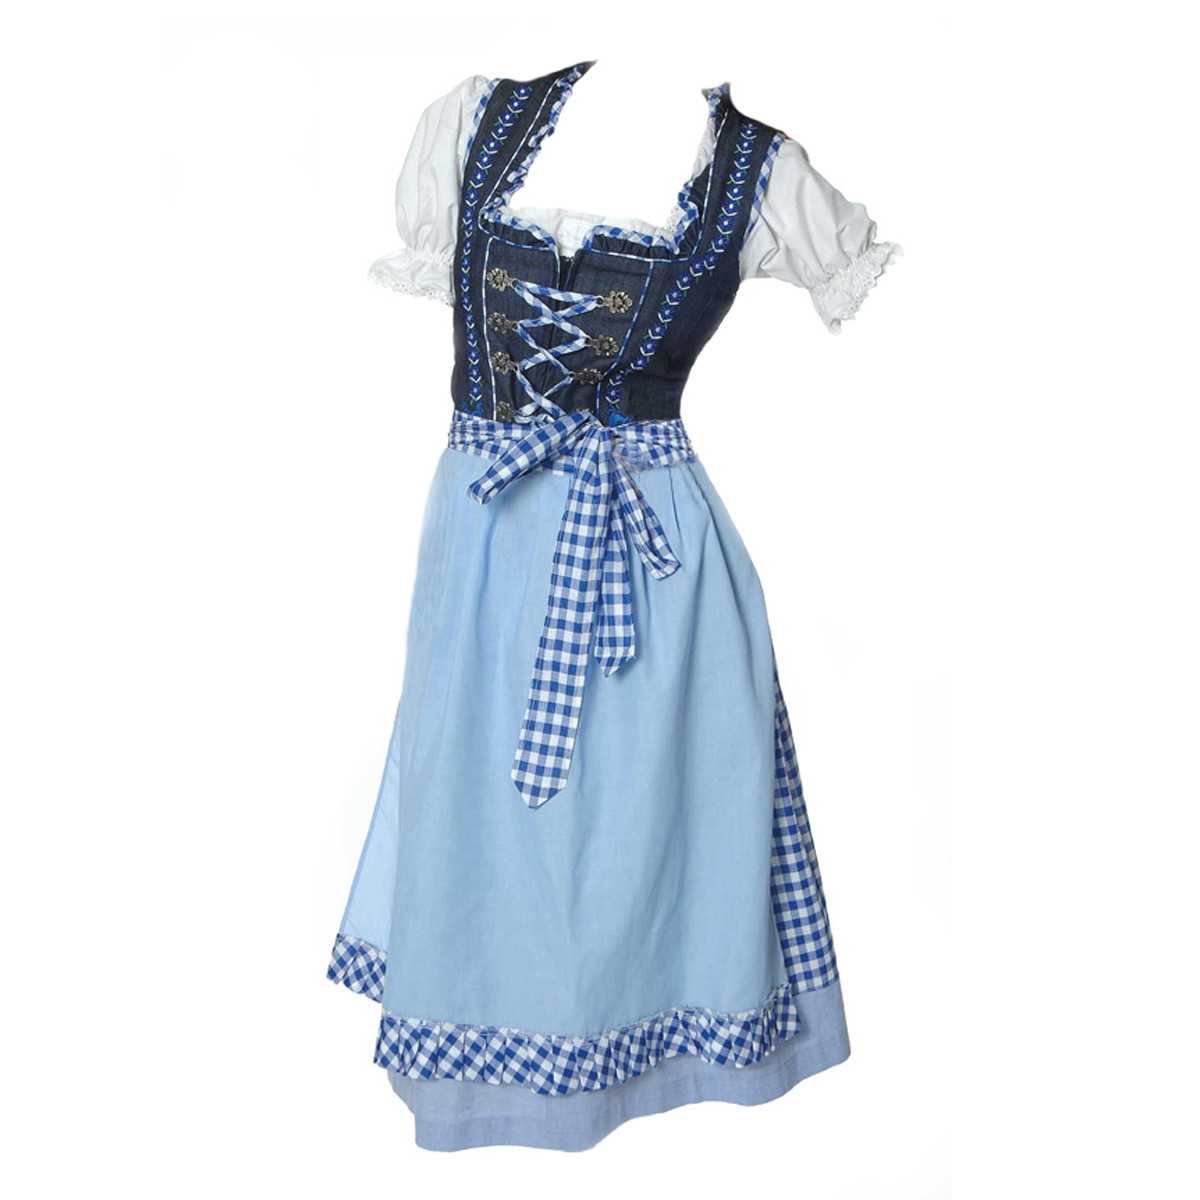 BLUE LONG DIRNDL WITH LACES